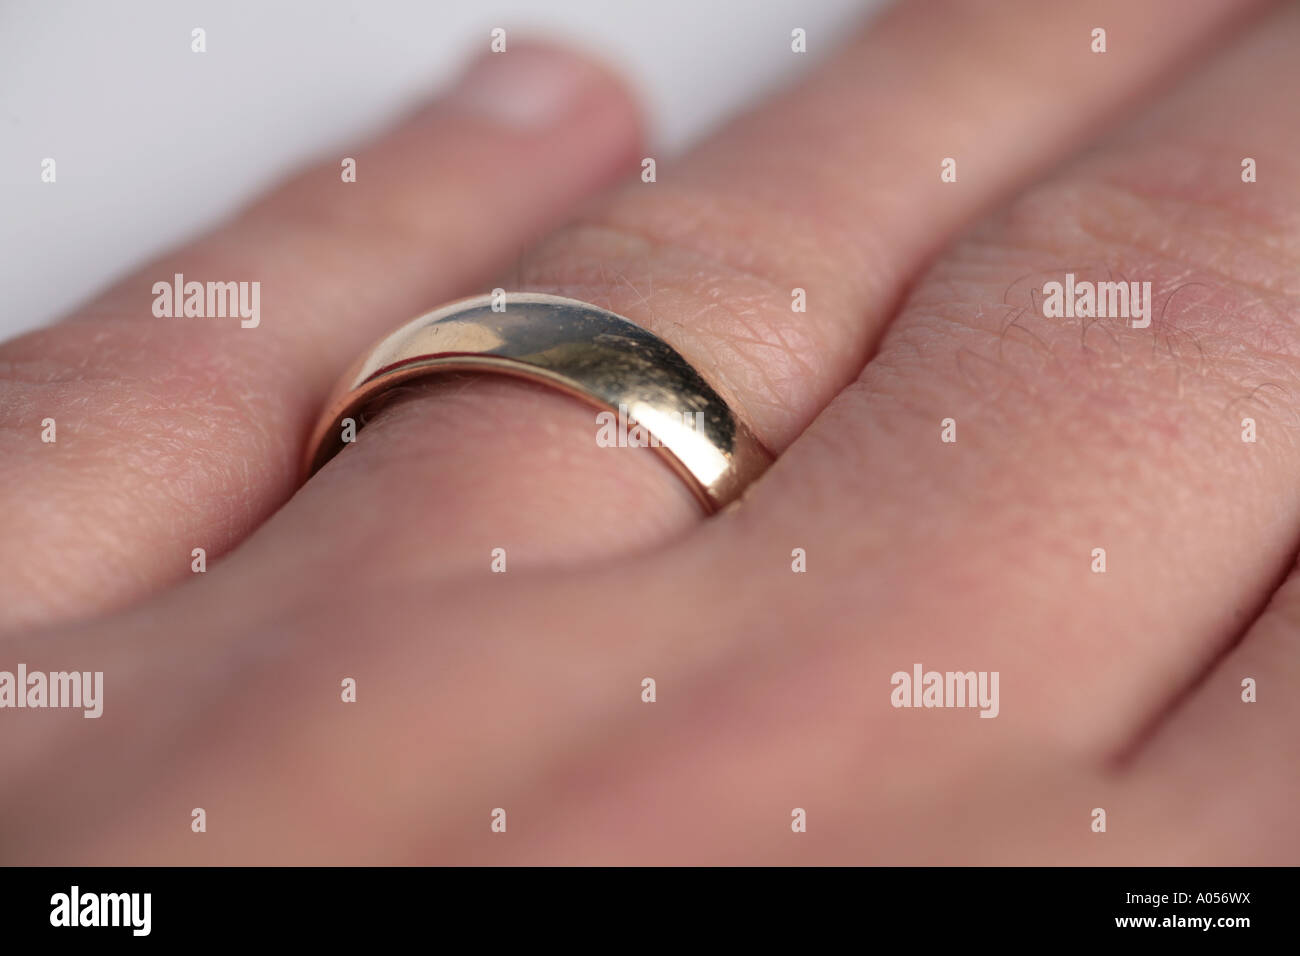 Mans Wedding Band Stock Photos & Mans Wedding Band Stock Images - Alamy